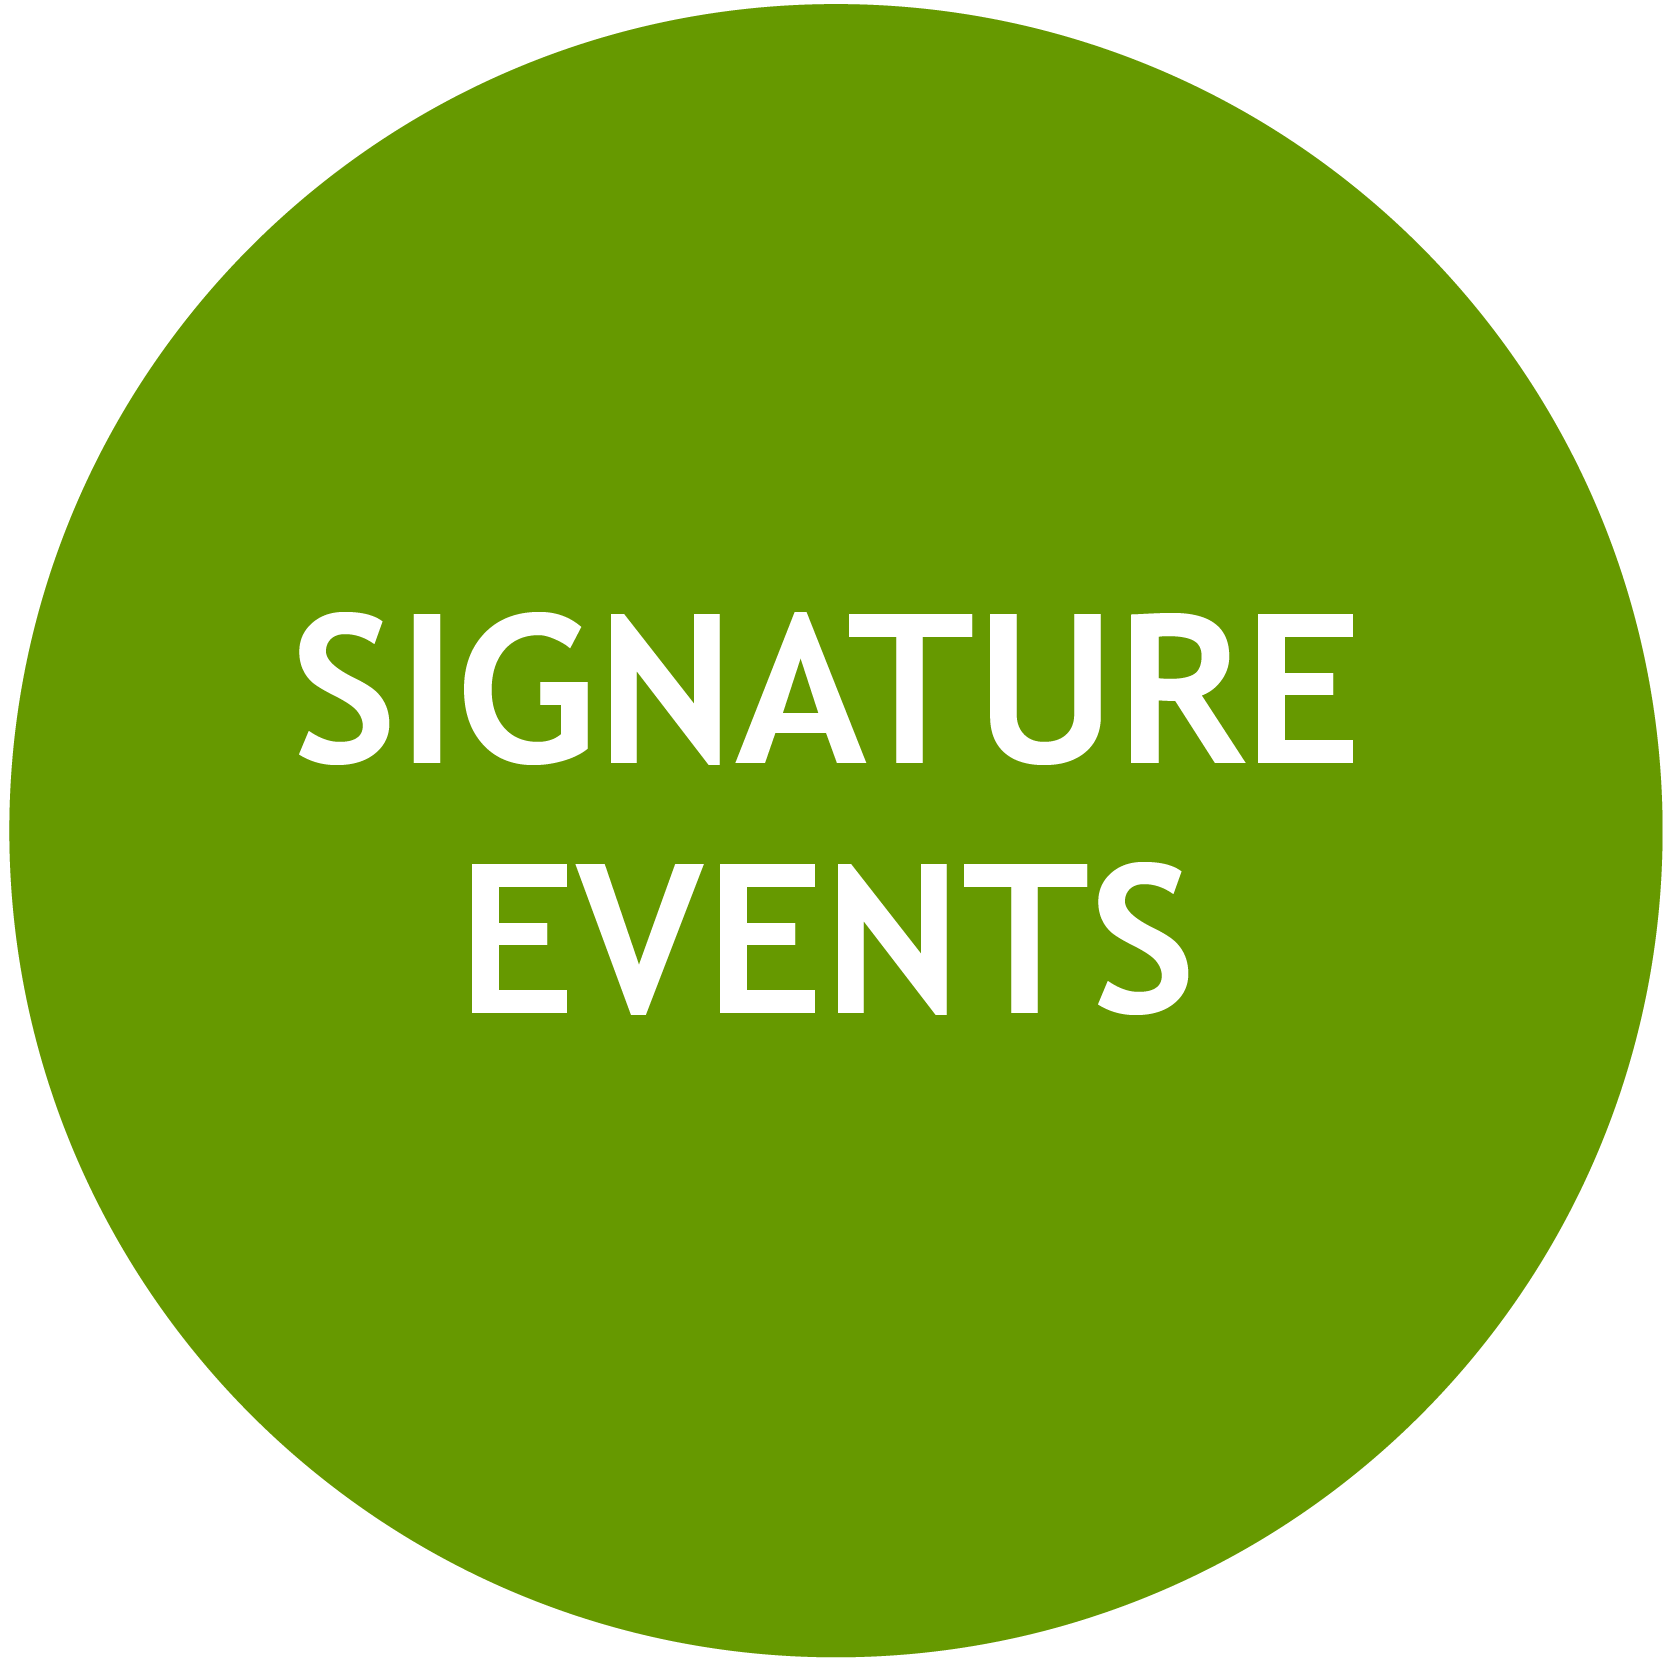 Signature-Events-Circle-01.png